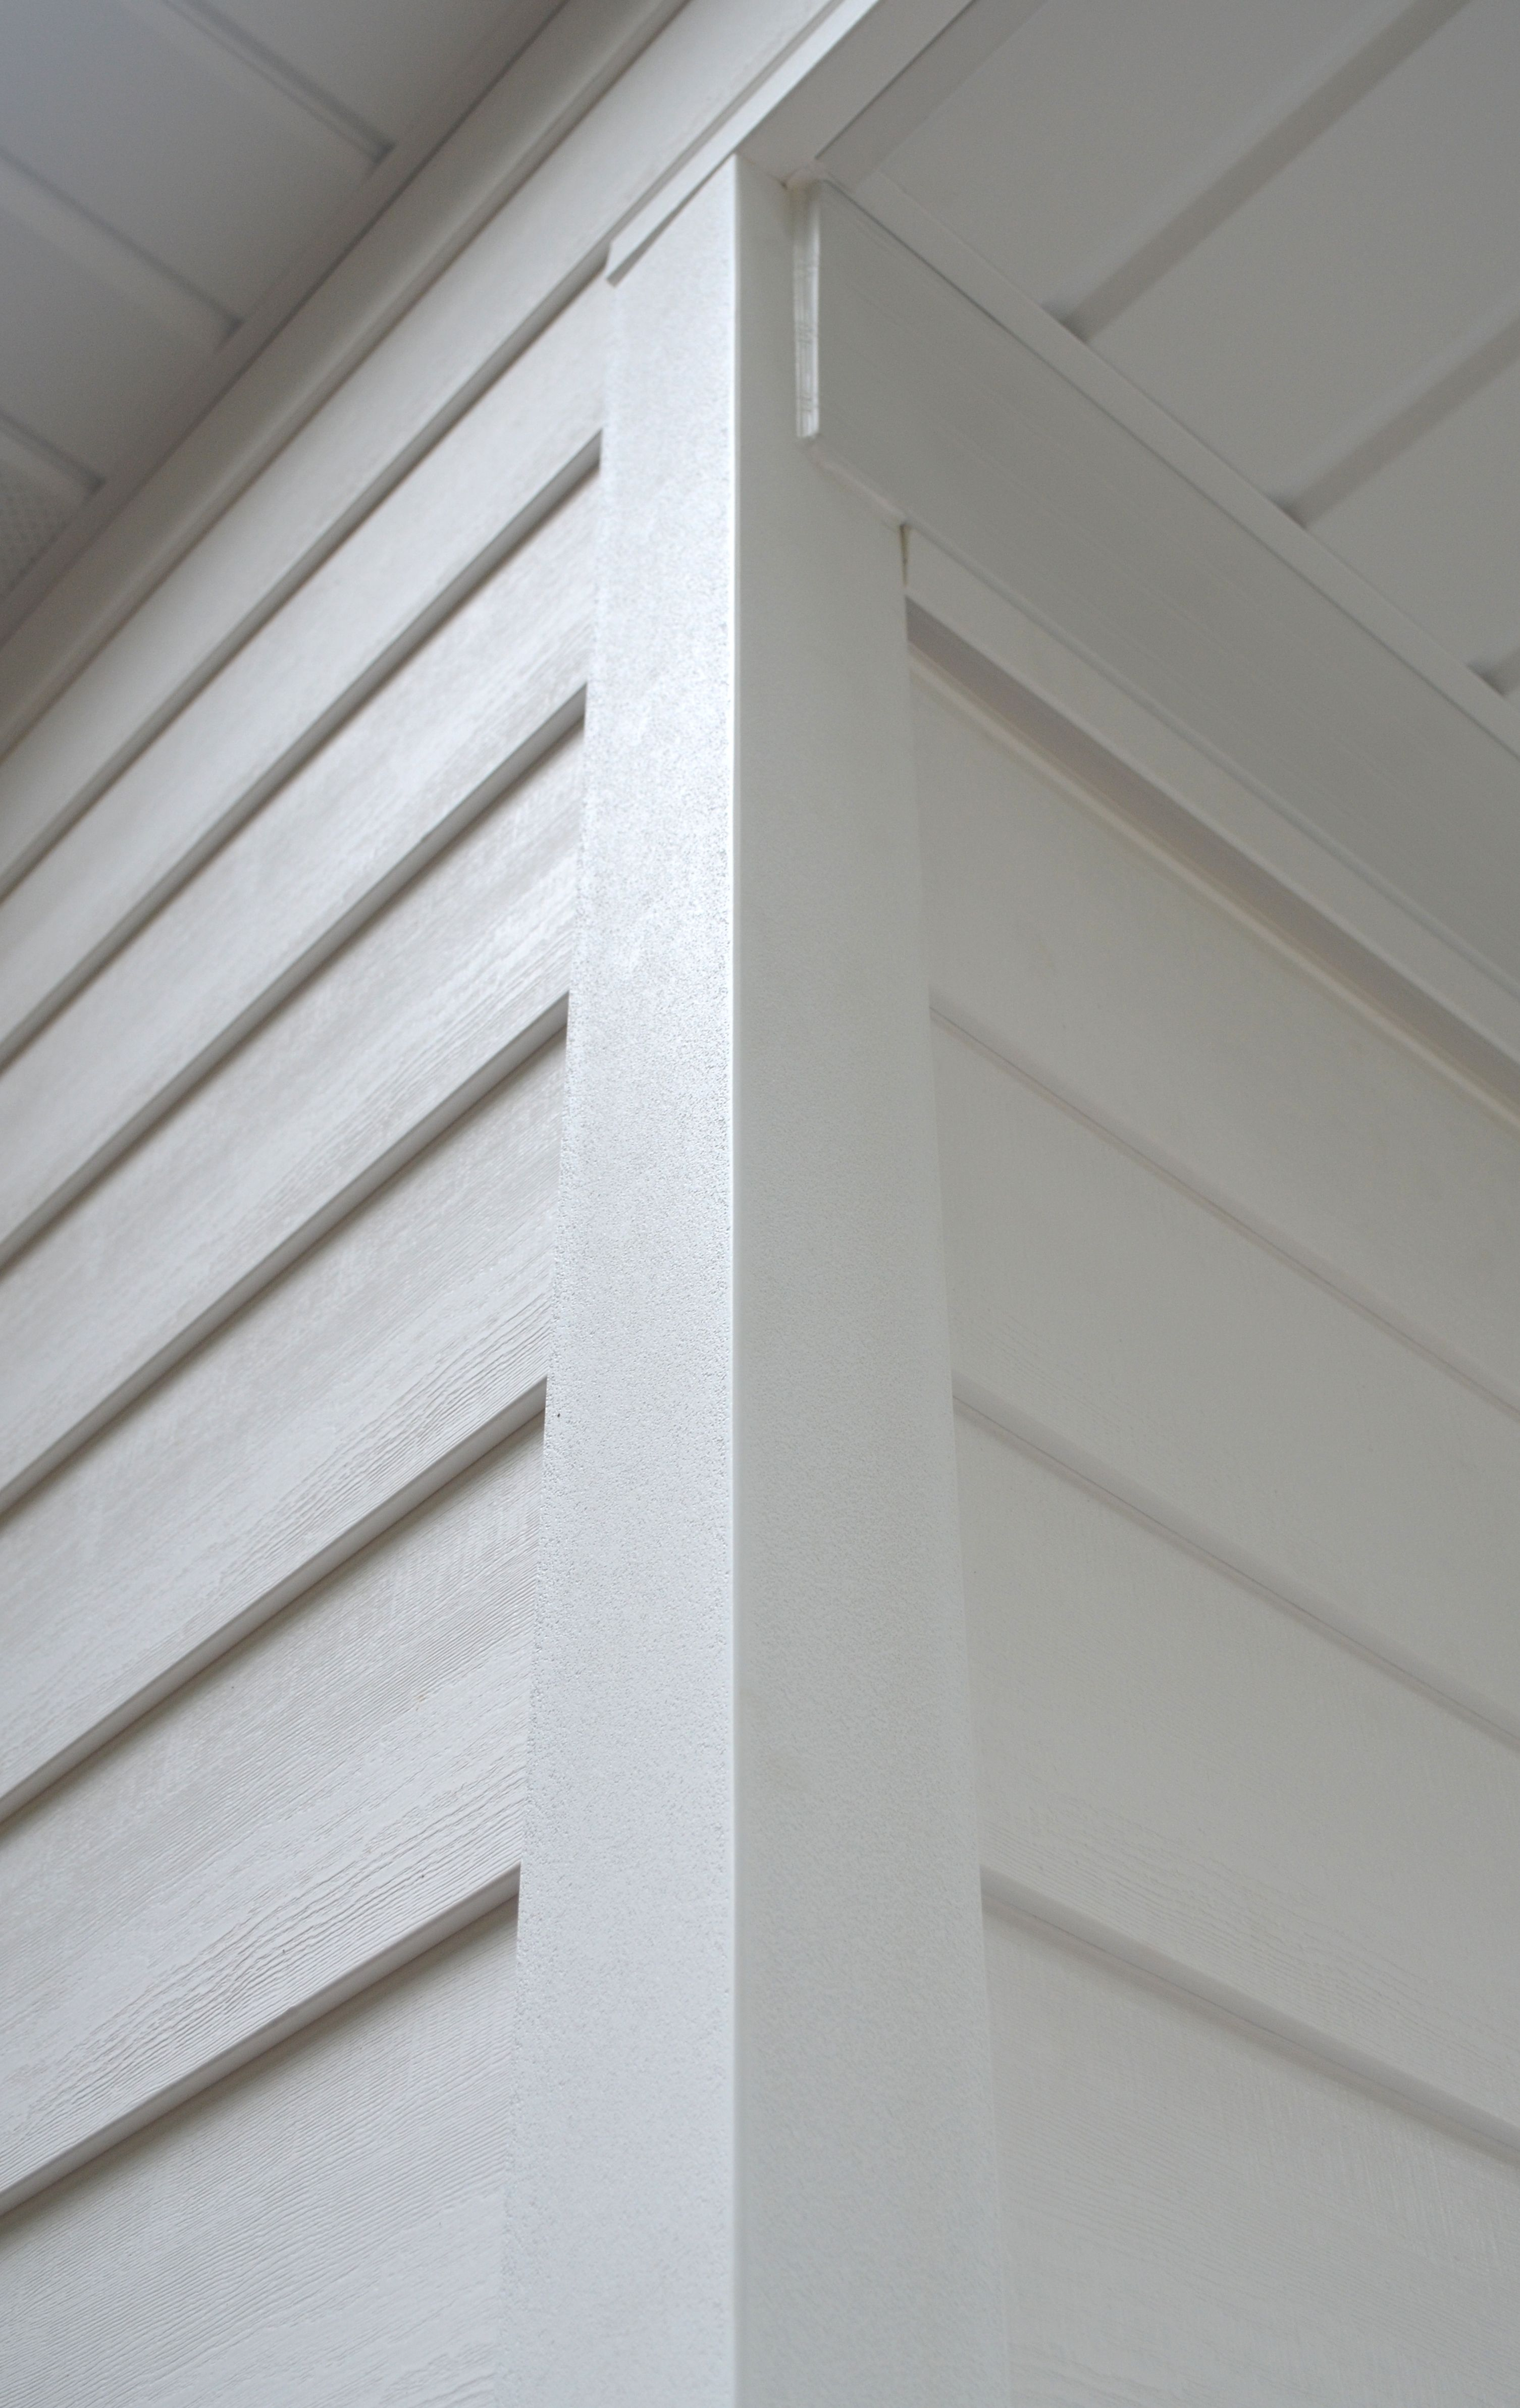 Everlast Polymeric Cladding Trim Collection Is Right For Every